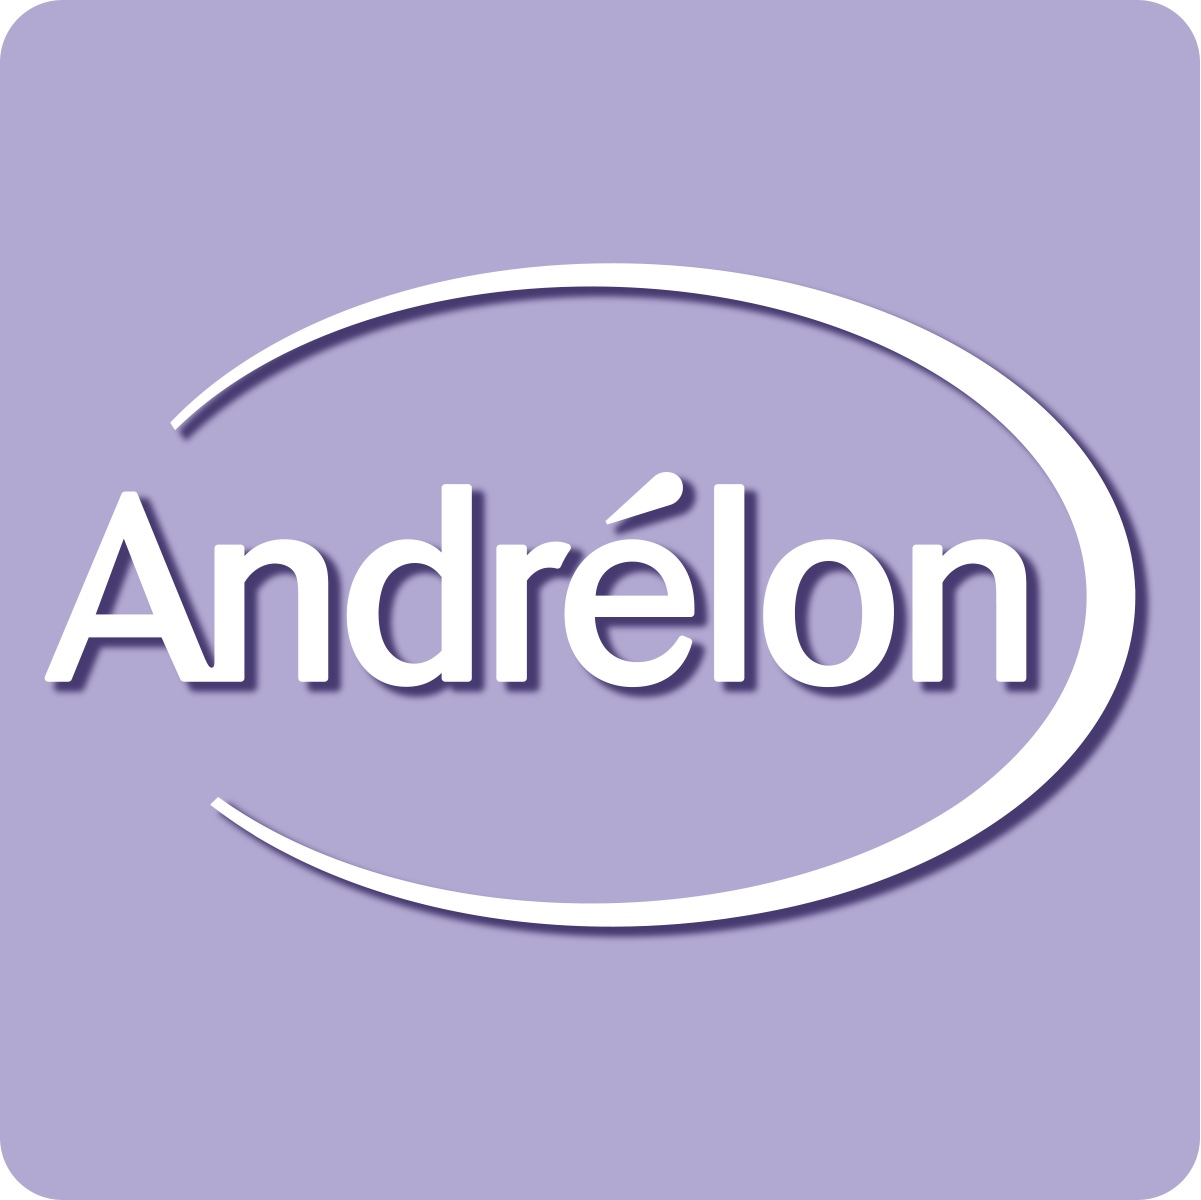 andrelon-rounded-large